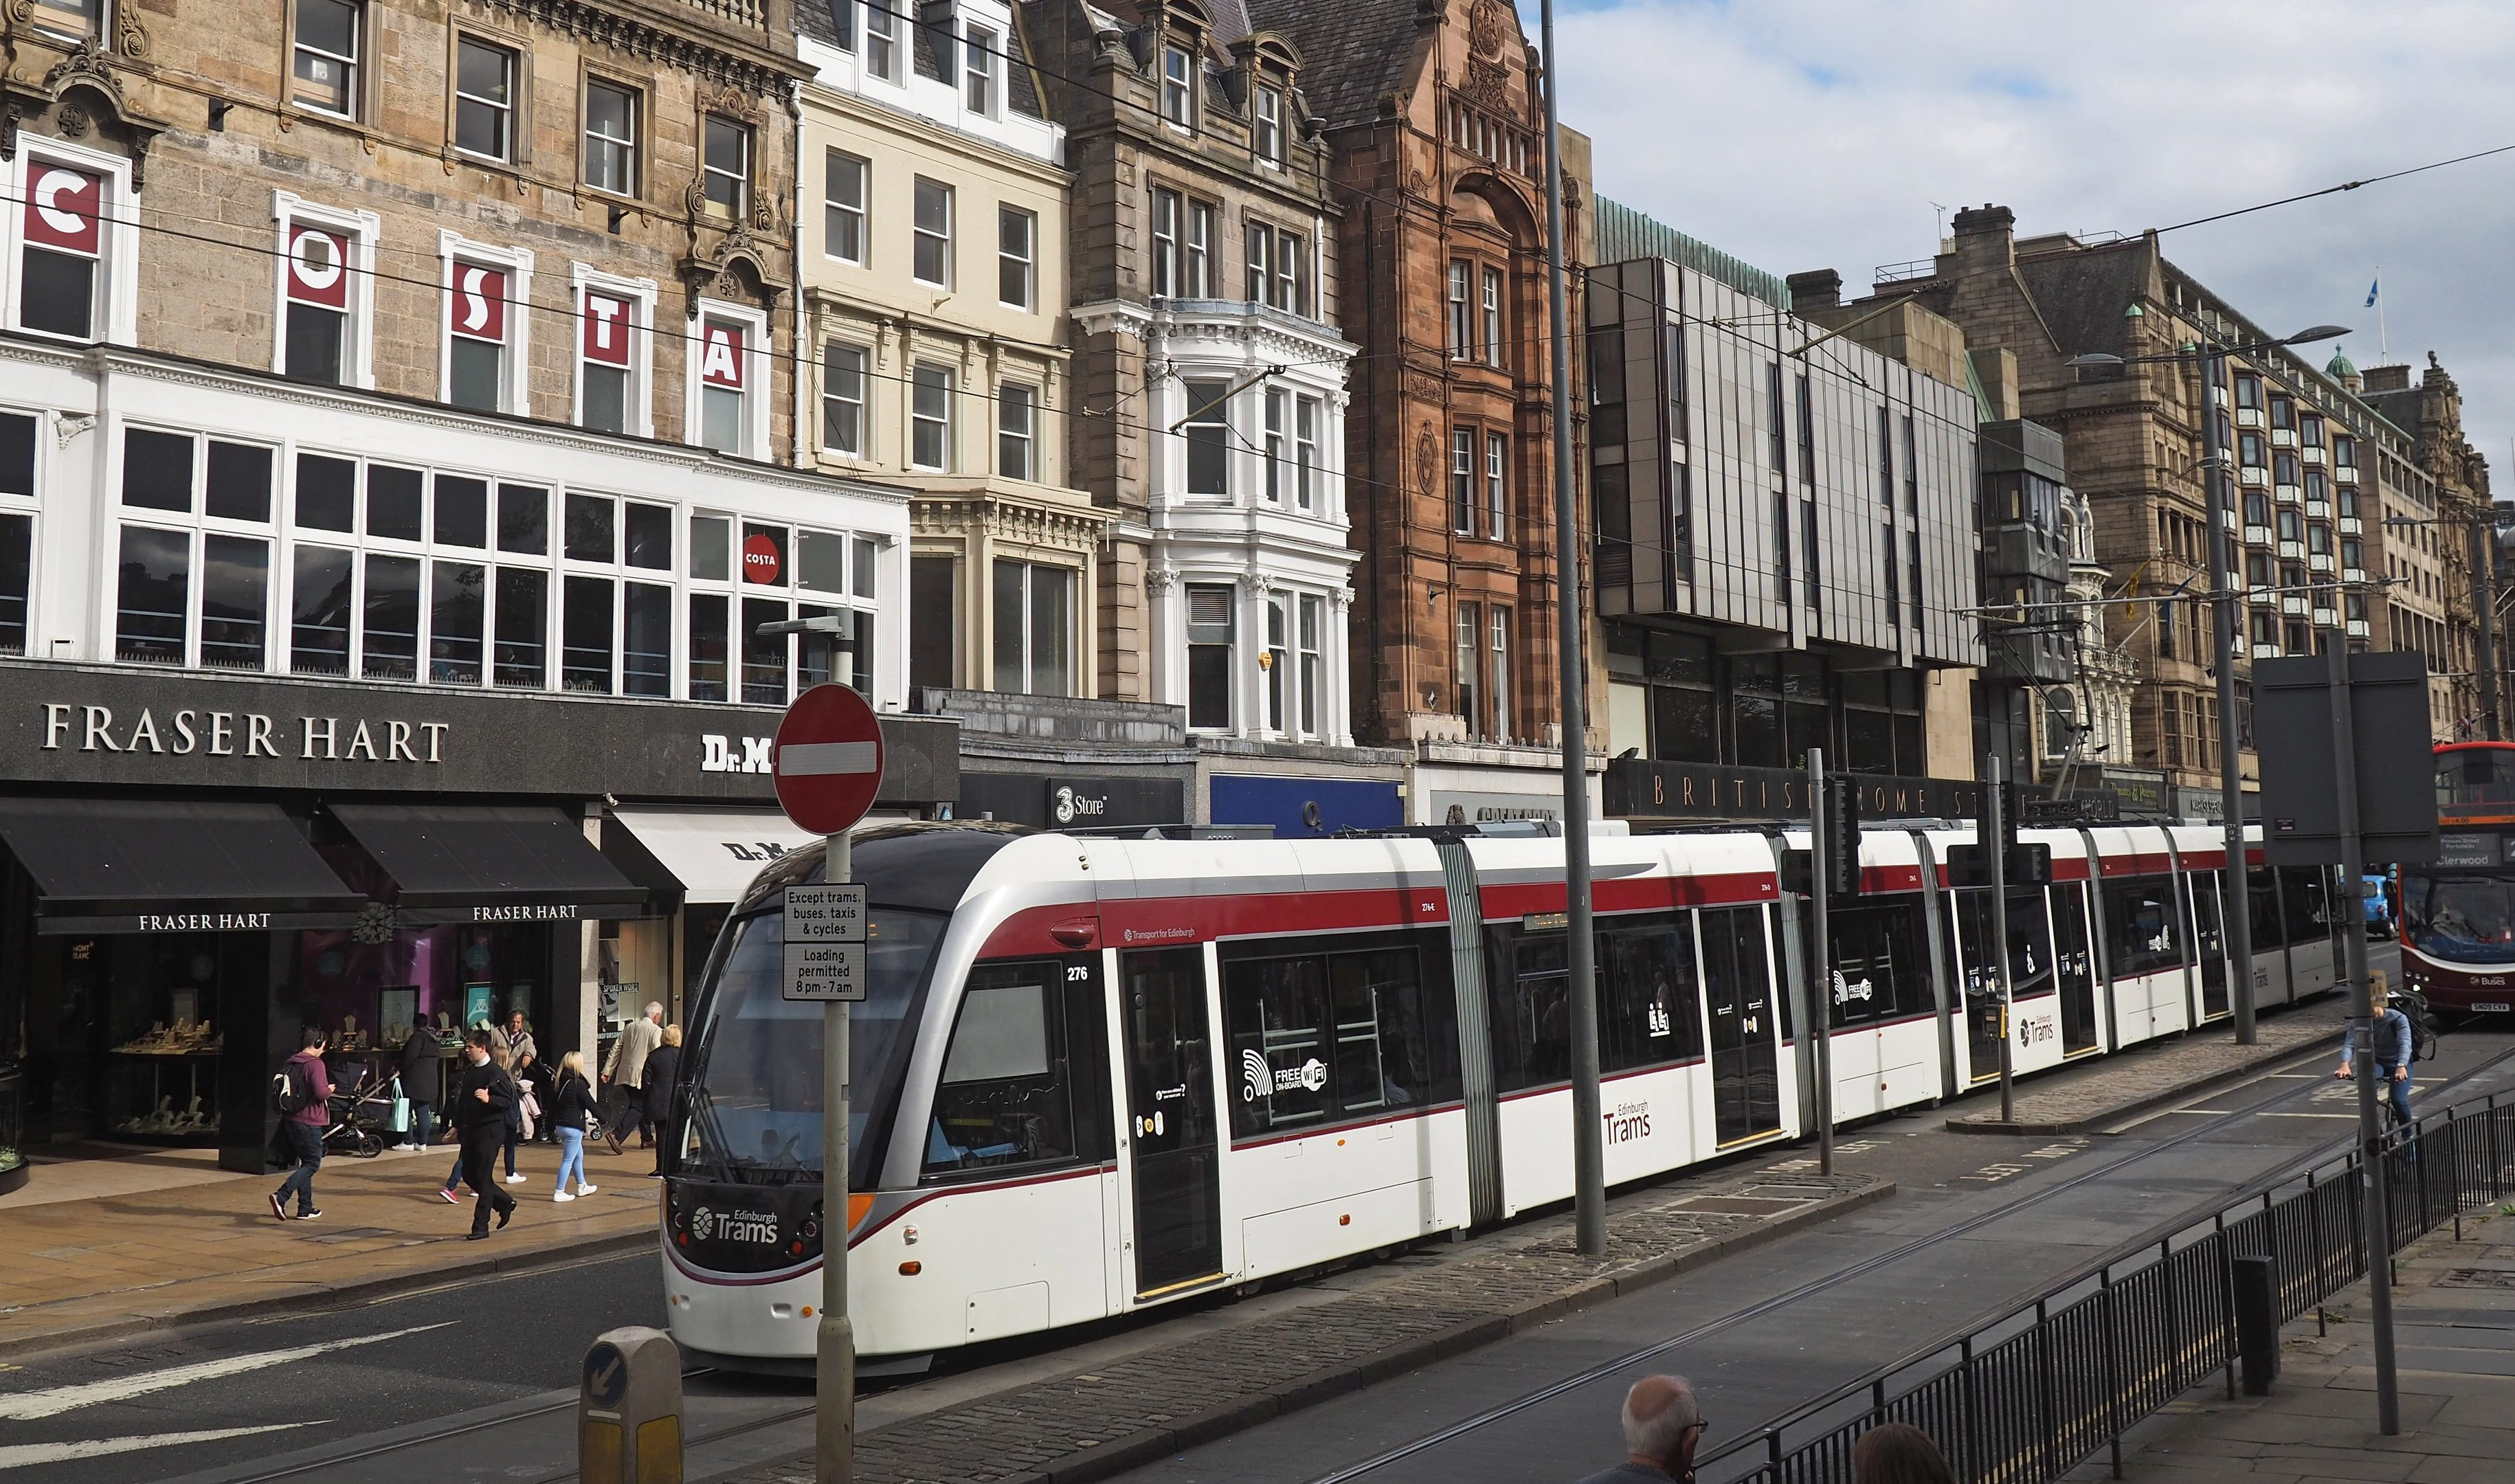 The Edinburgh tram scheme went significantly over budget and was delivered years later than originally planned. (iStock, peterspiro)